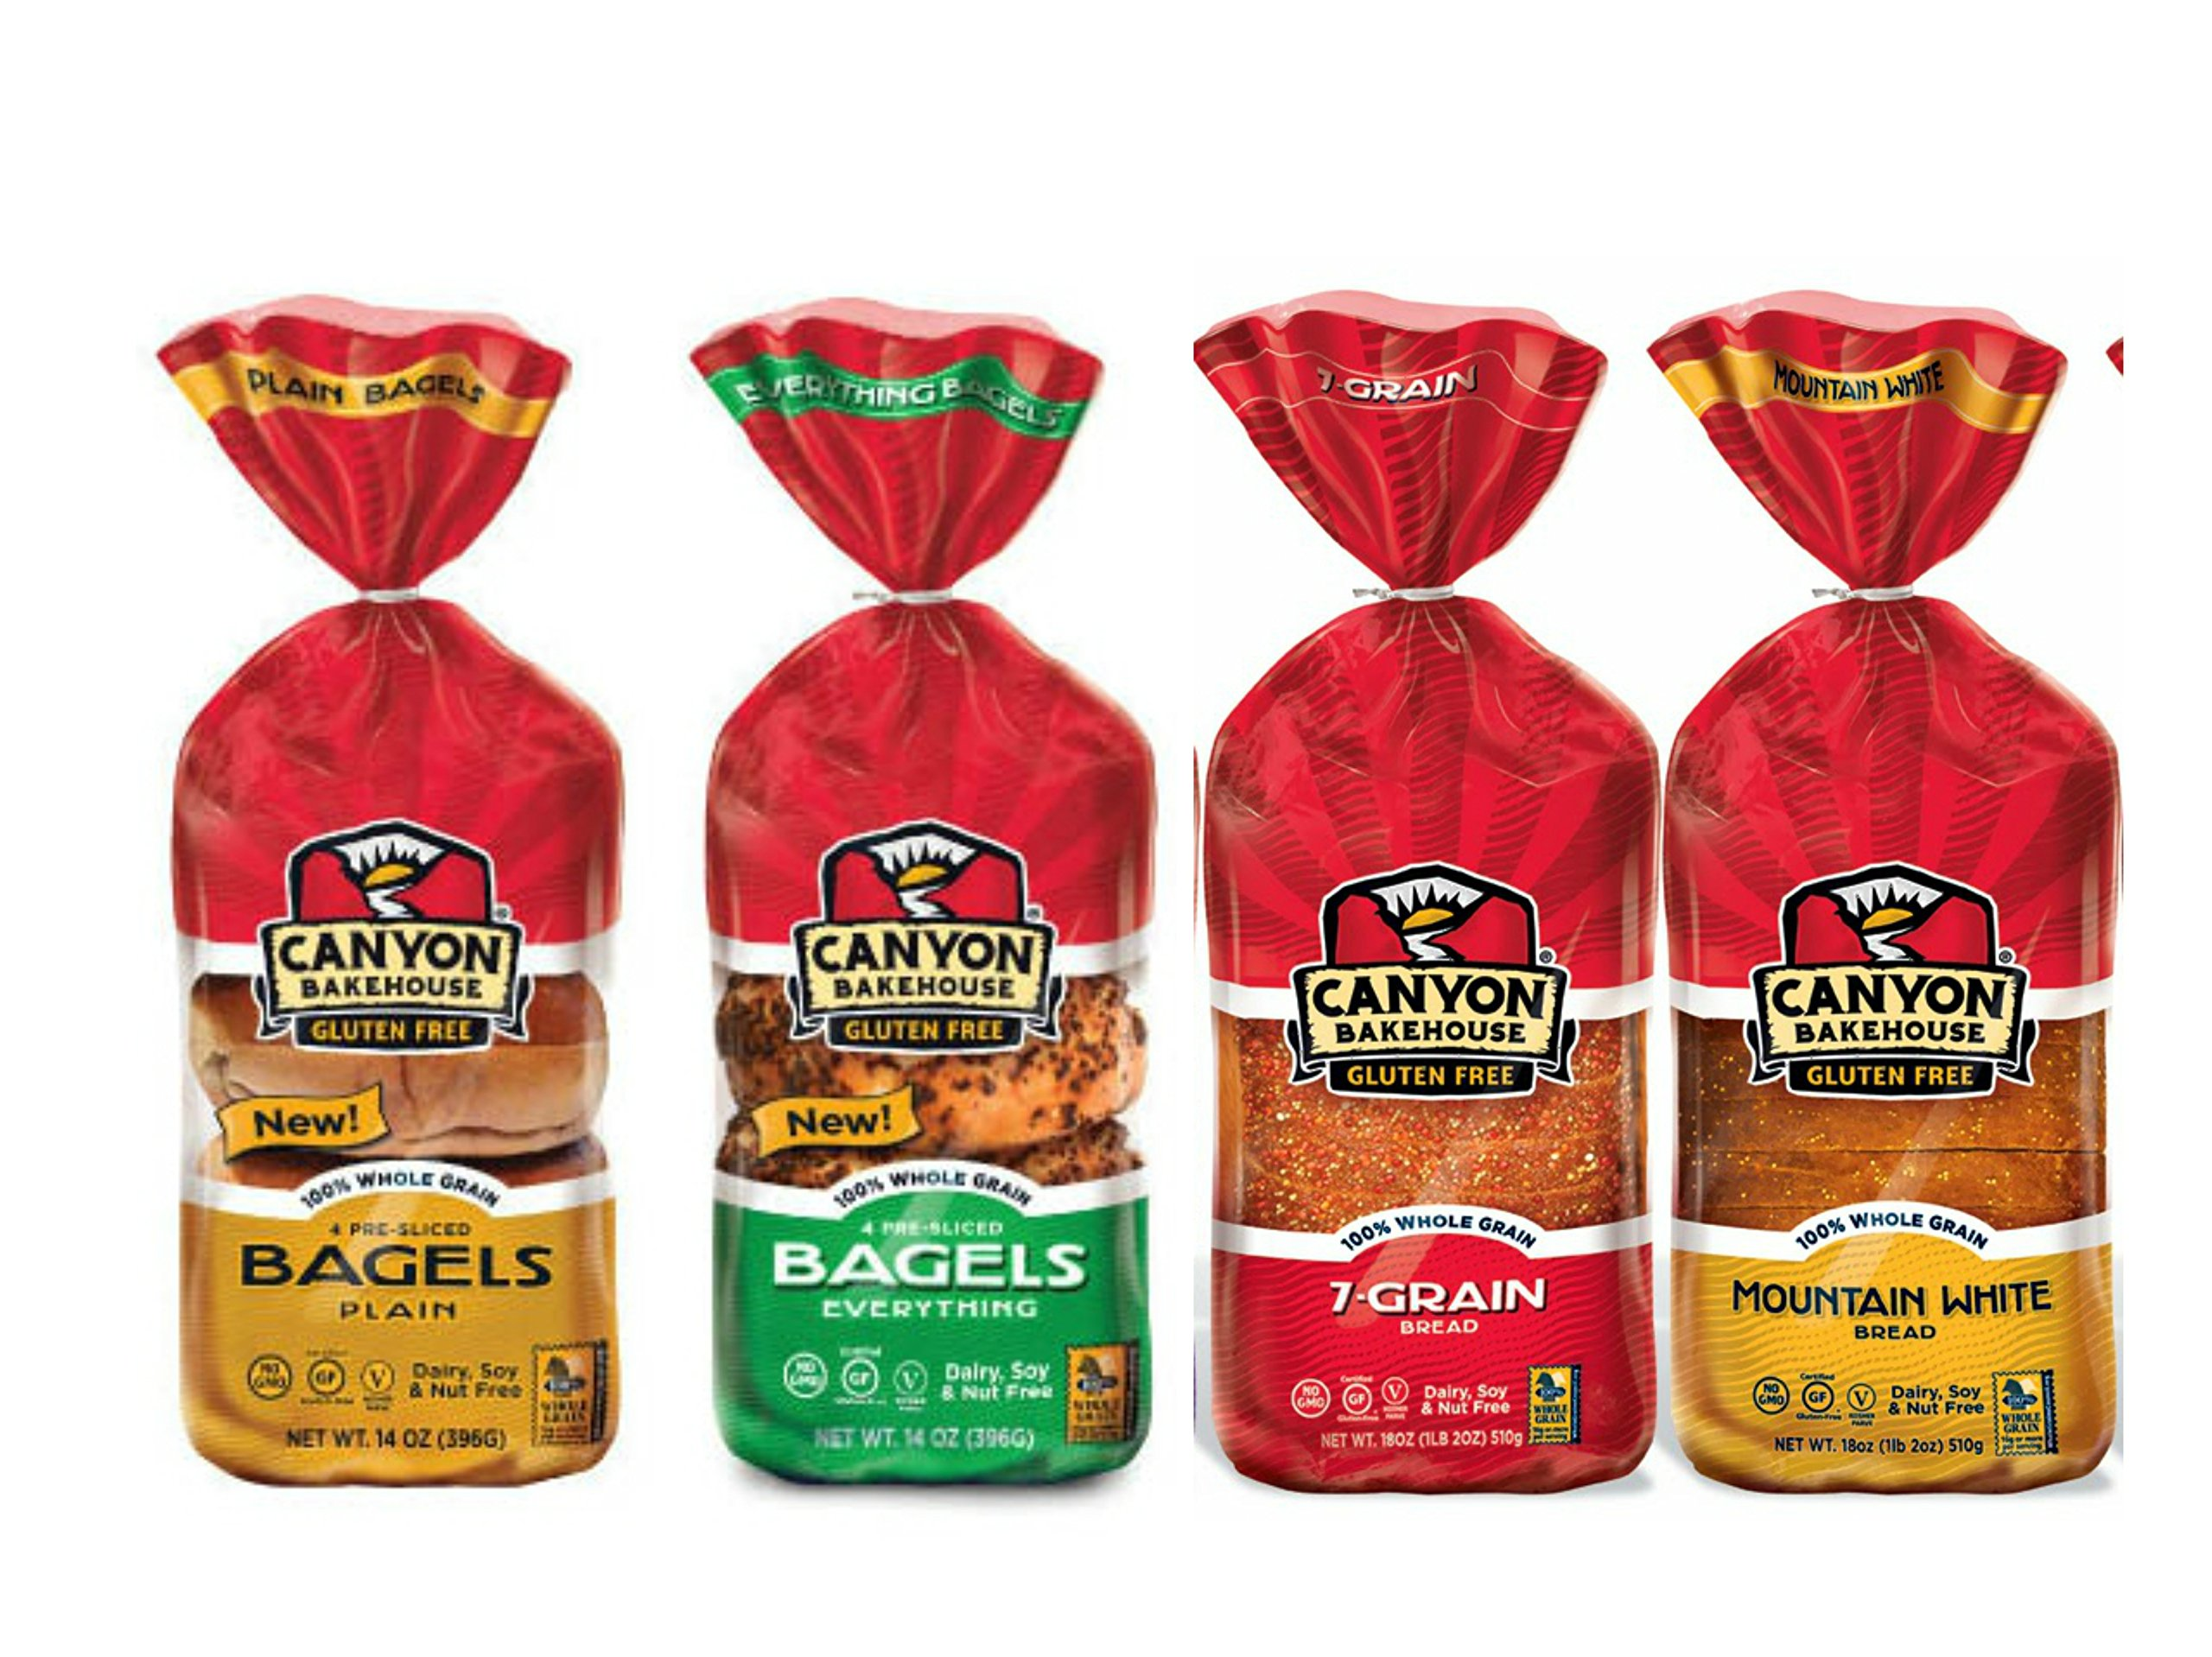 Canyon Bakehouse Gluten Free Bread and Bagel Variety Pack by Canyon Bakehouse